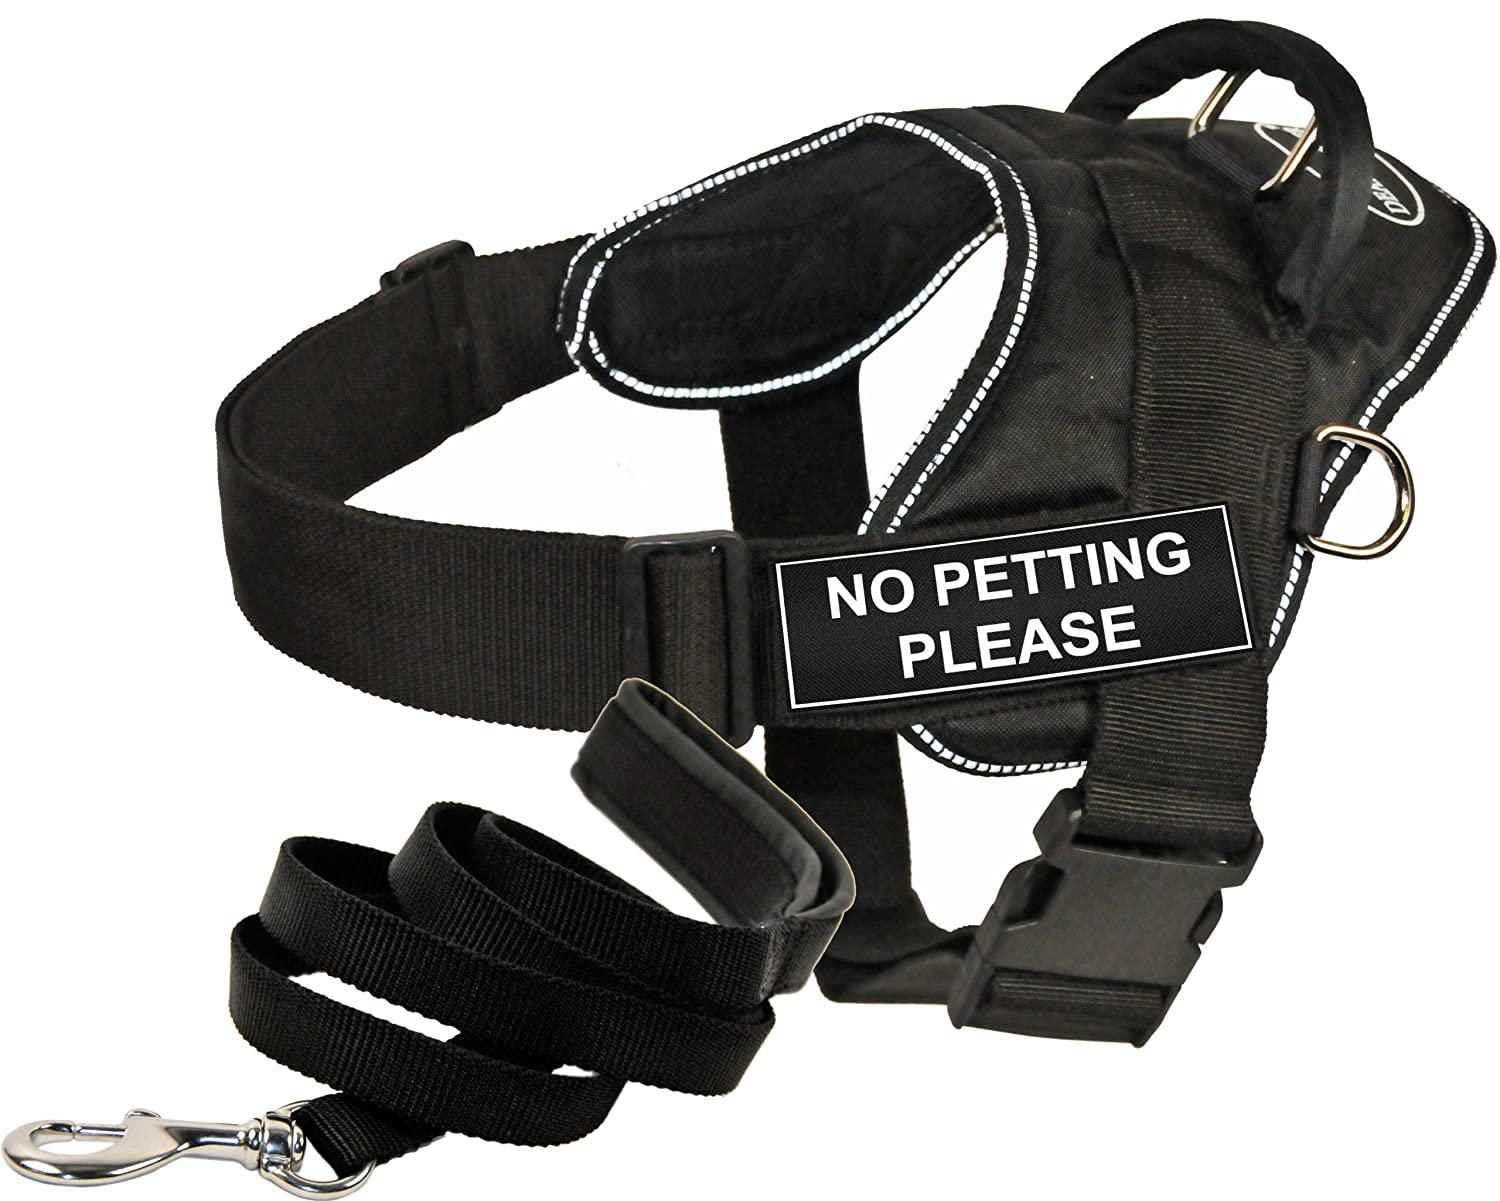 Dean & Tyler DT Fun Works Harness 6-Feet Padded Puppy Leash, No Petting Please, Large, Black